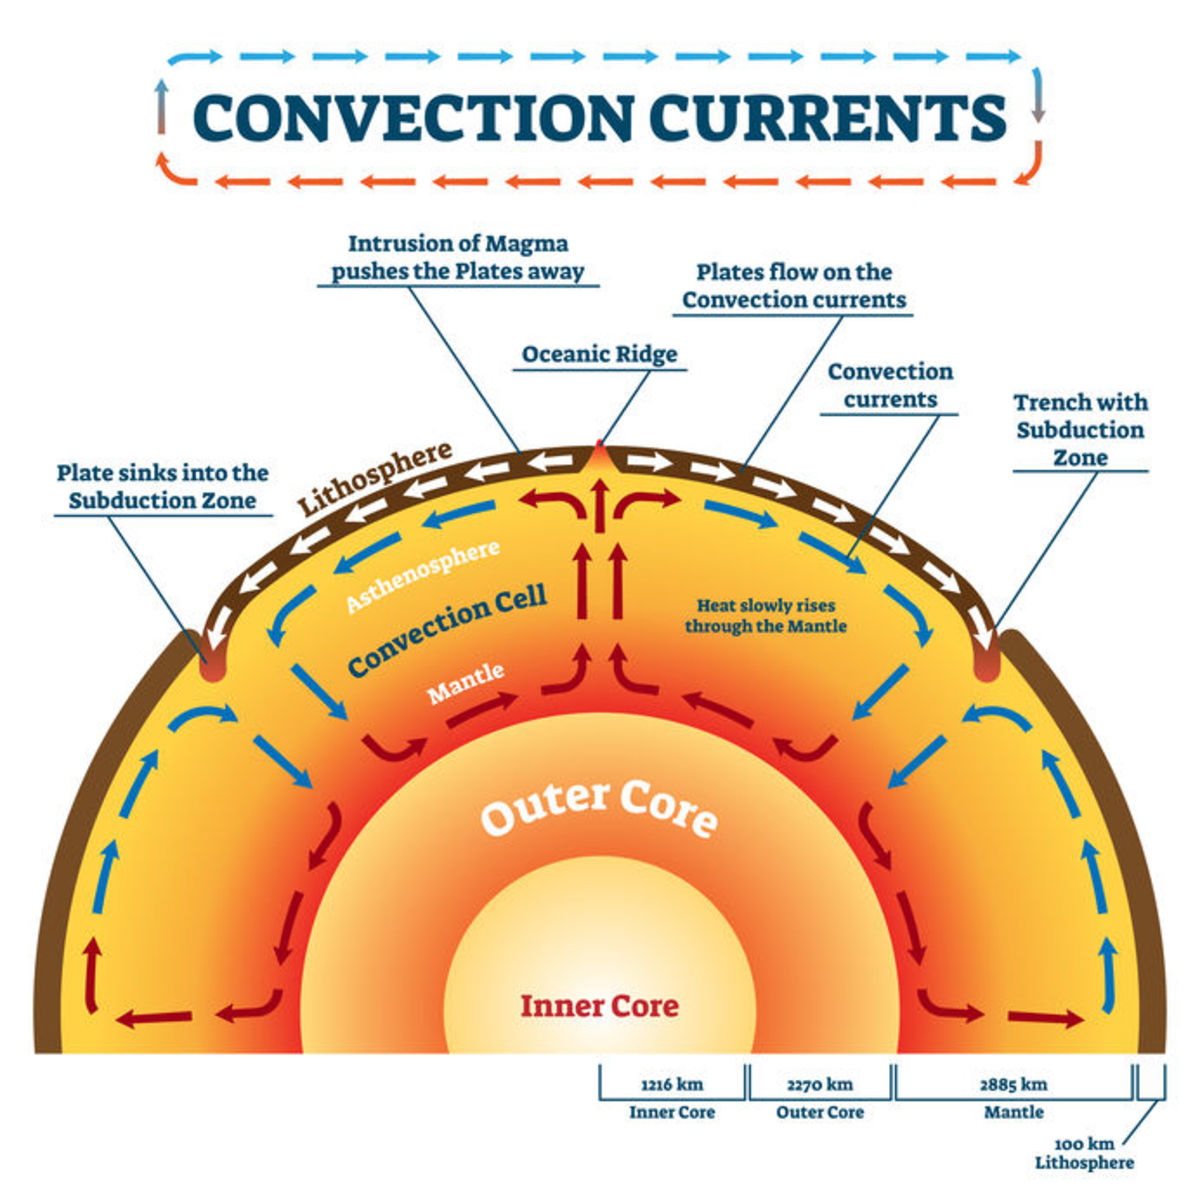 Convection currents in the mantle cause the motion of the lithosphere's plates.